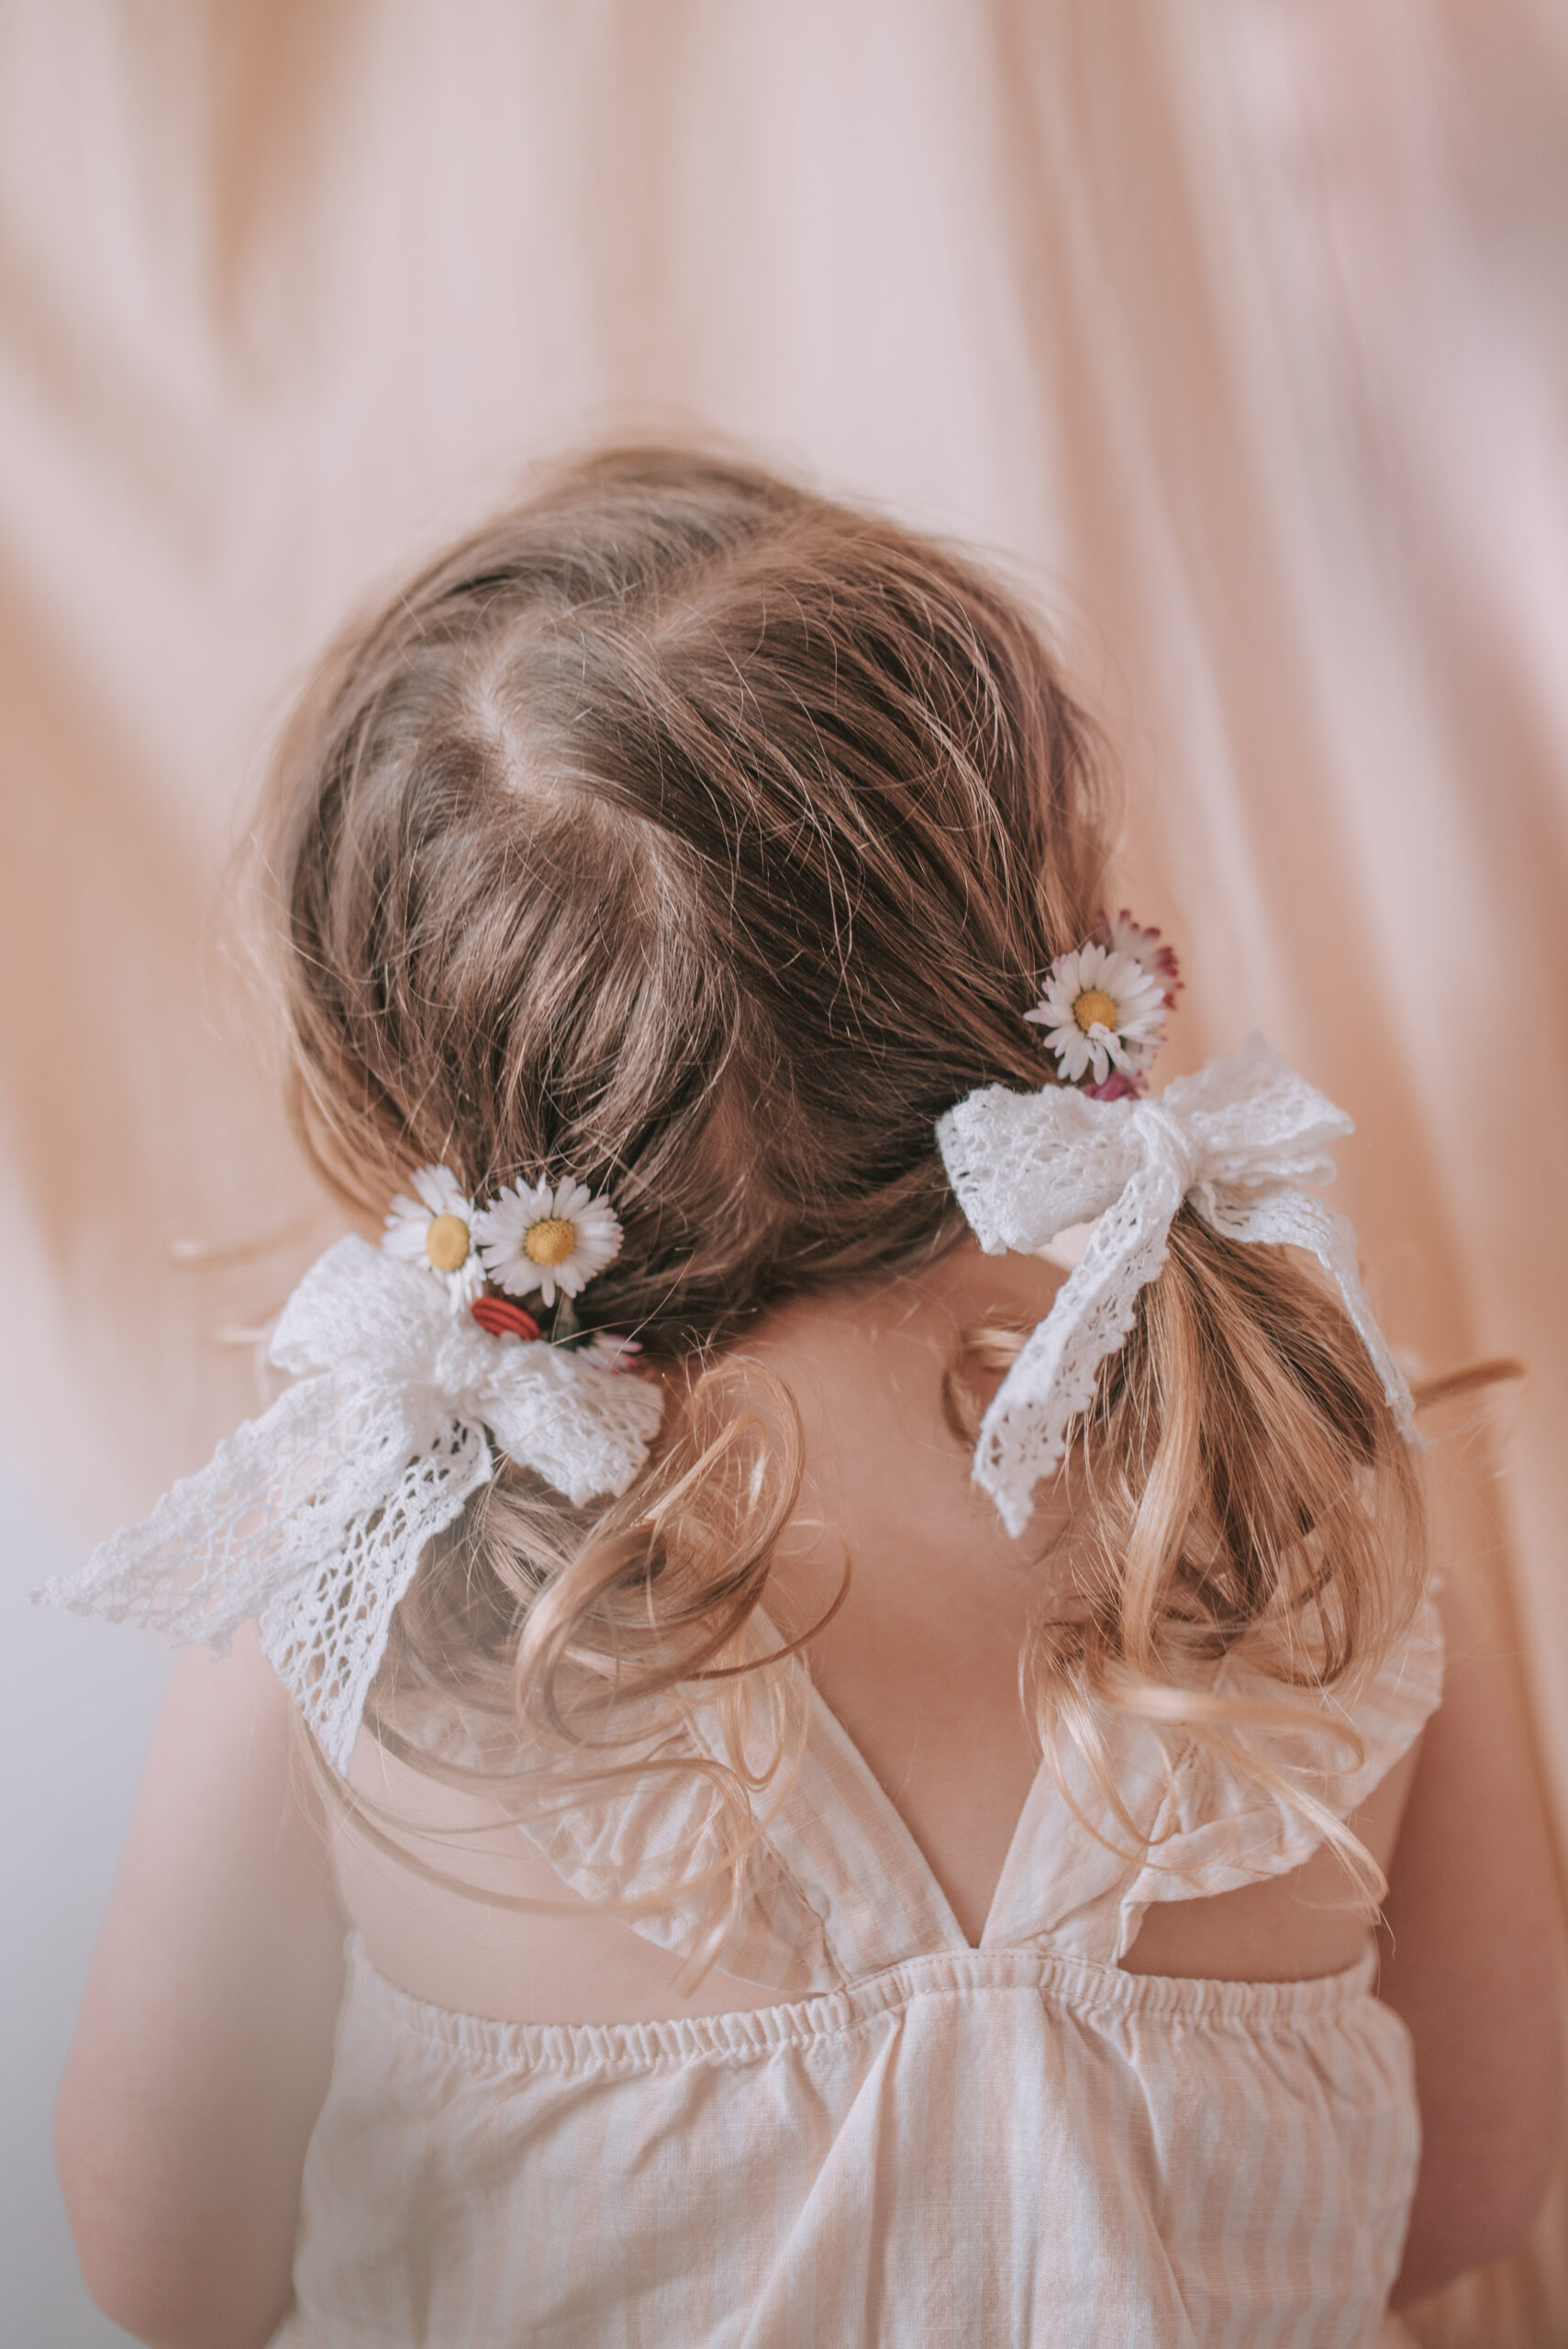 little girl bunches with white hair bows and daisy flowers in hair portrait photography